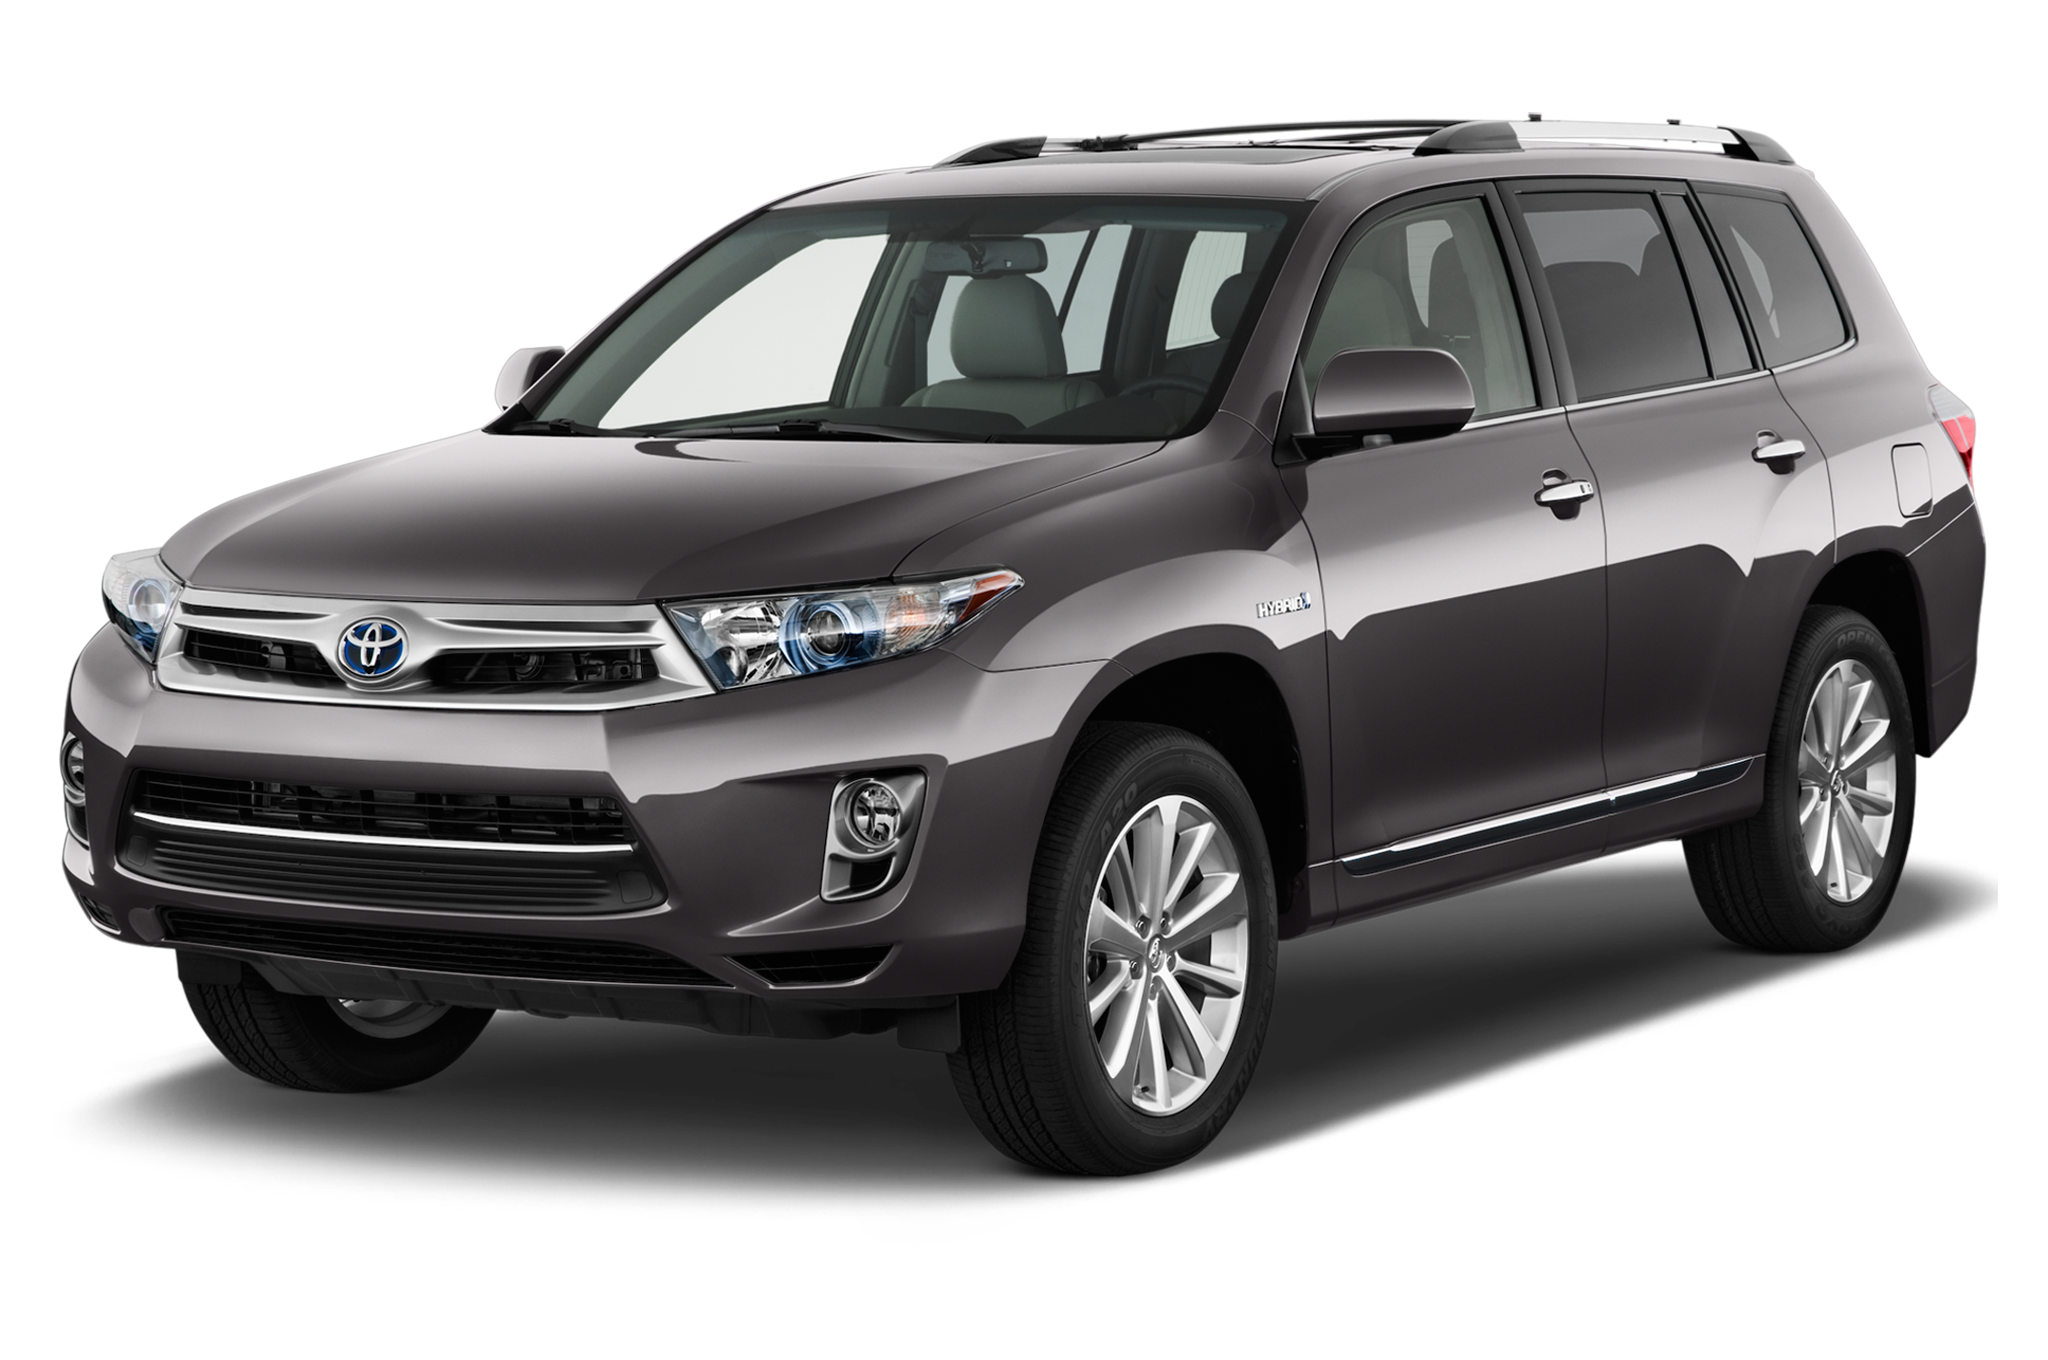 2012 toyota highlander limited hybrid 4x4 specs and features msn autos. Black Bedroom Furniture Sets. Home Design Ideas